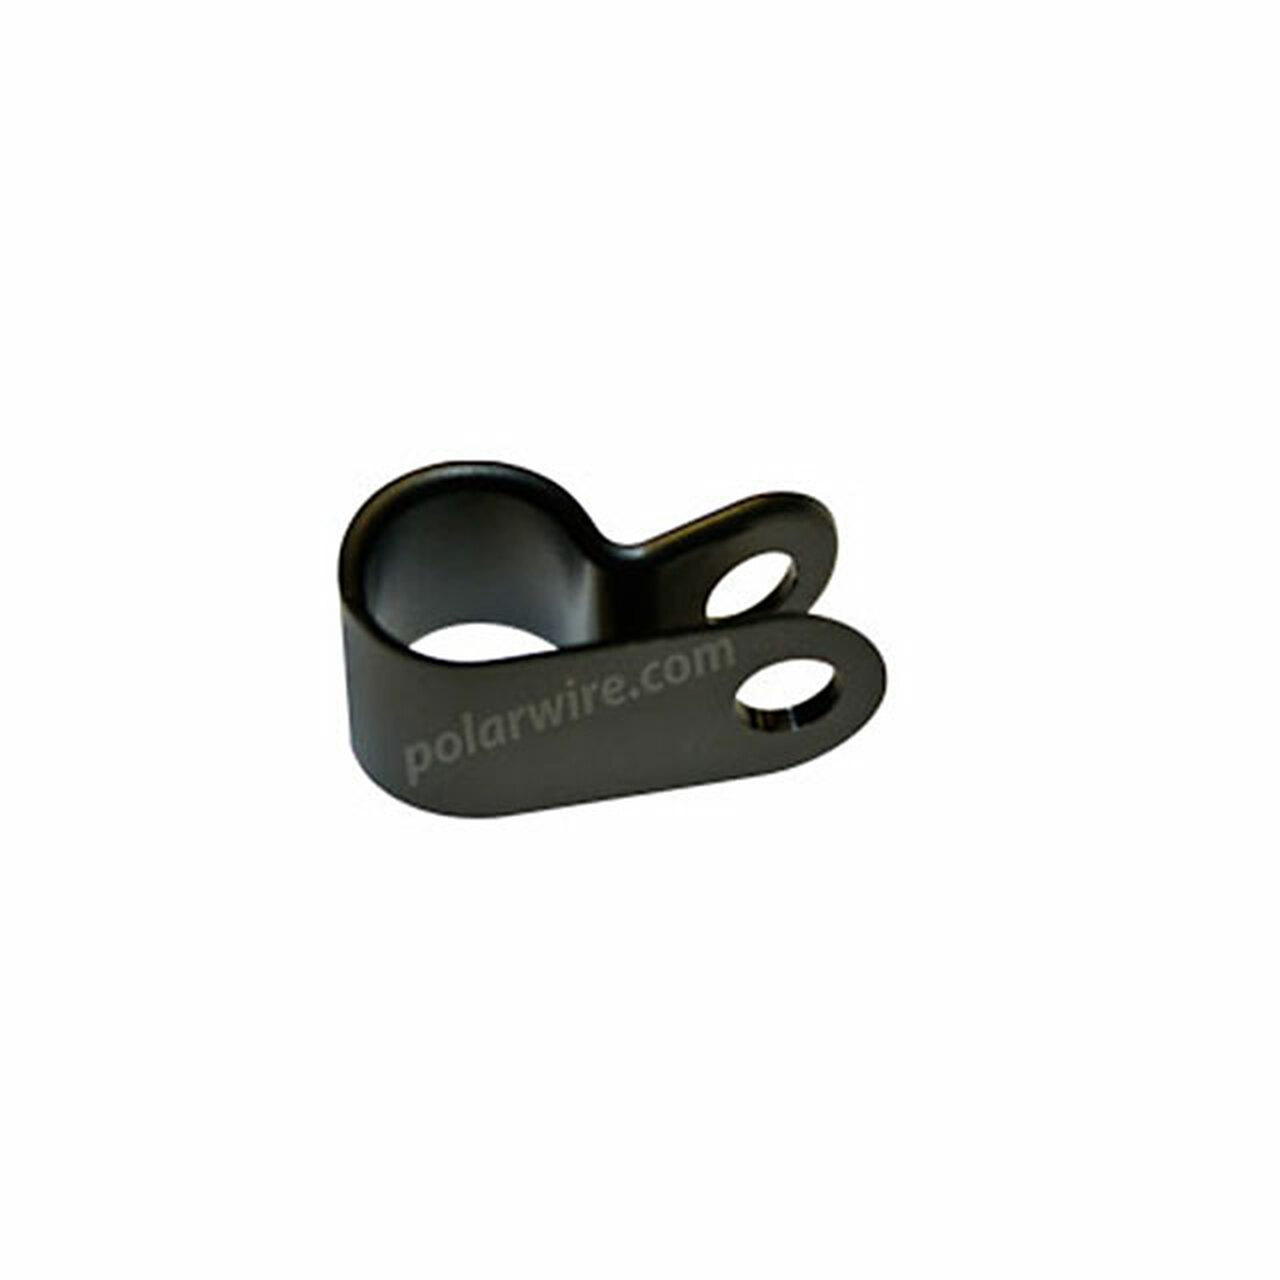 "CABLE CLAMP NYLON 1/4"" BK #8 Screw"